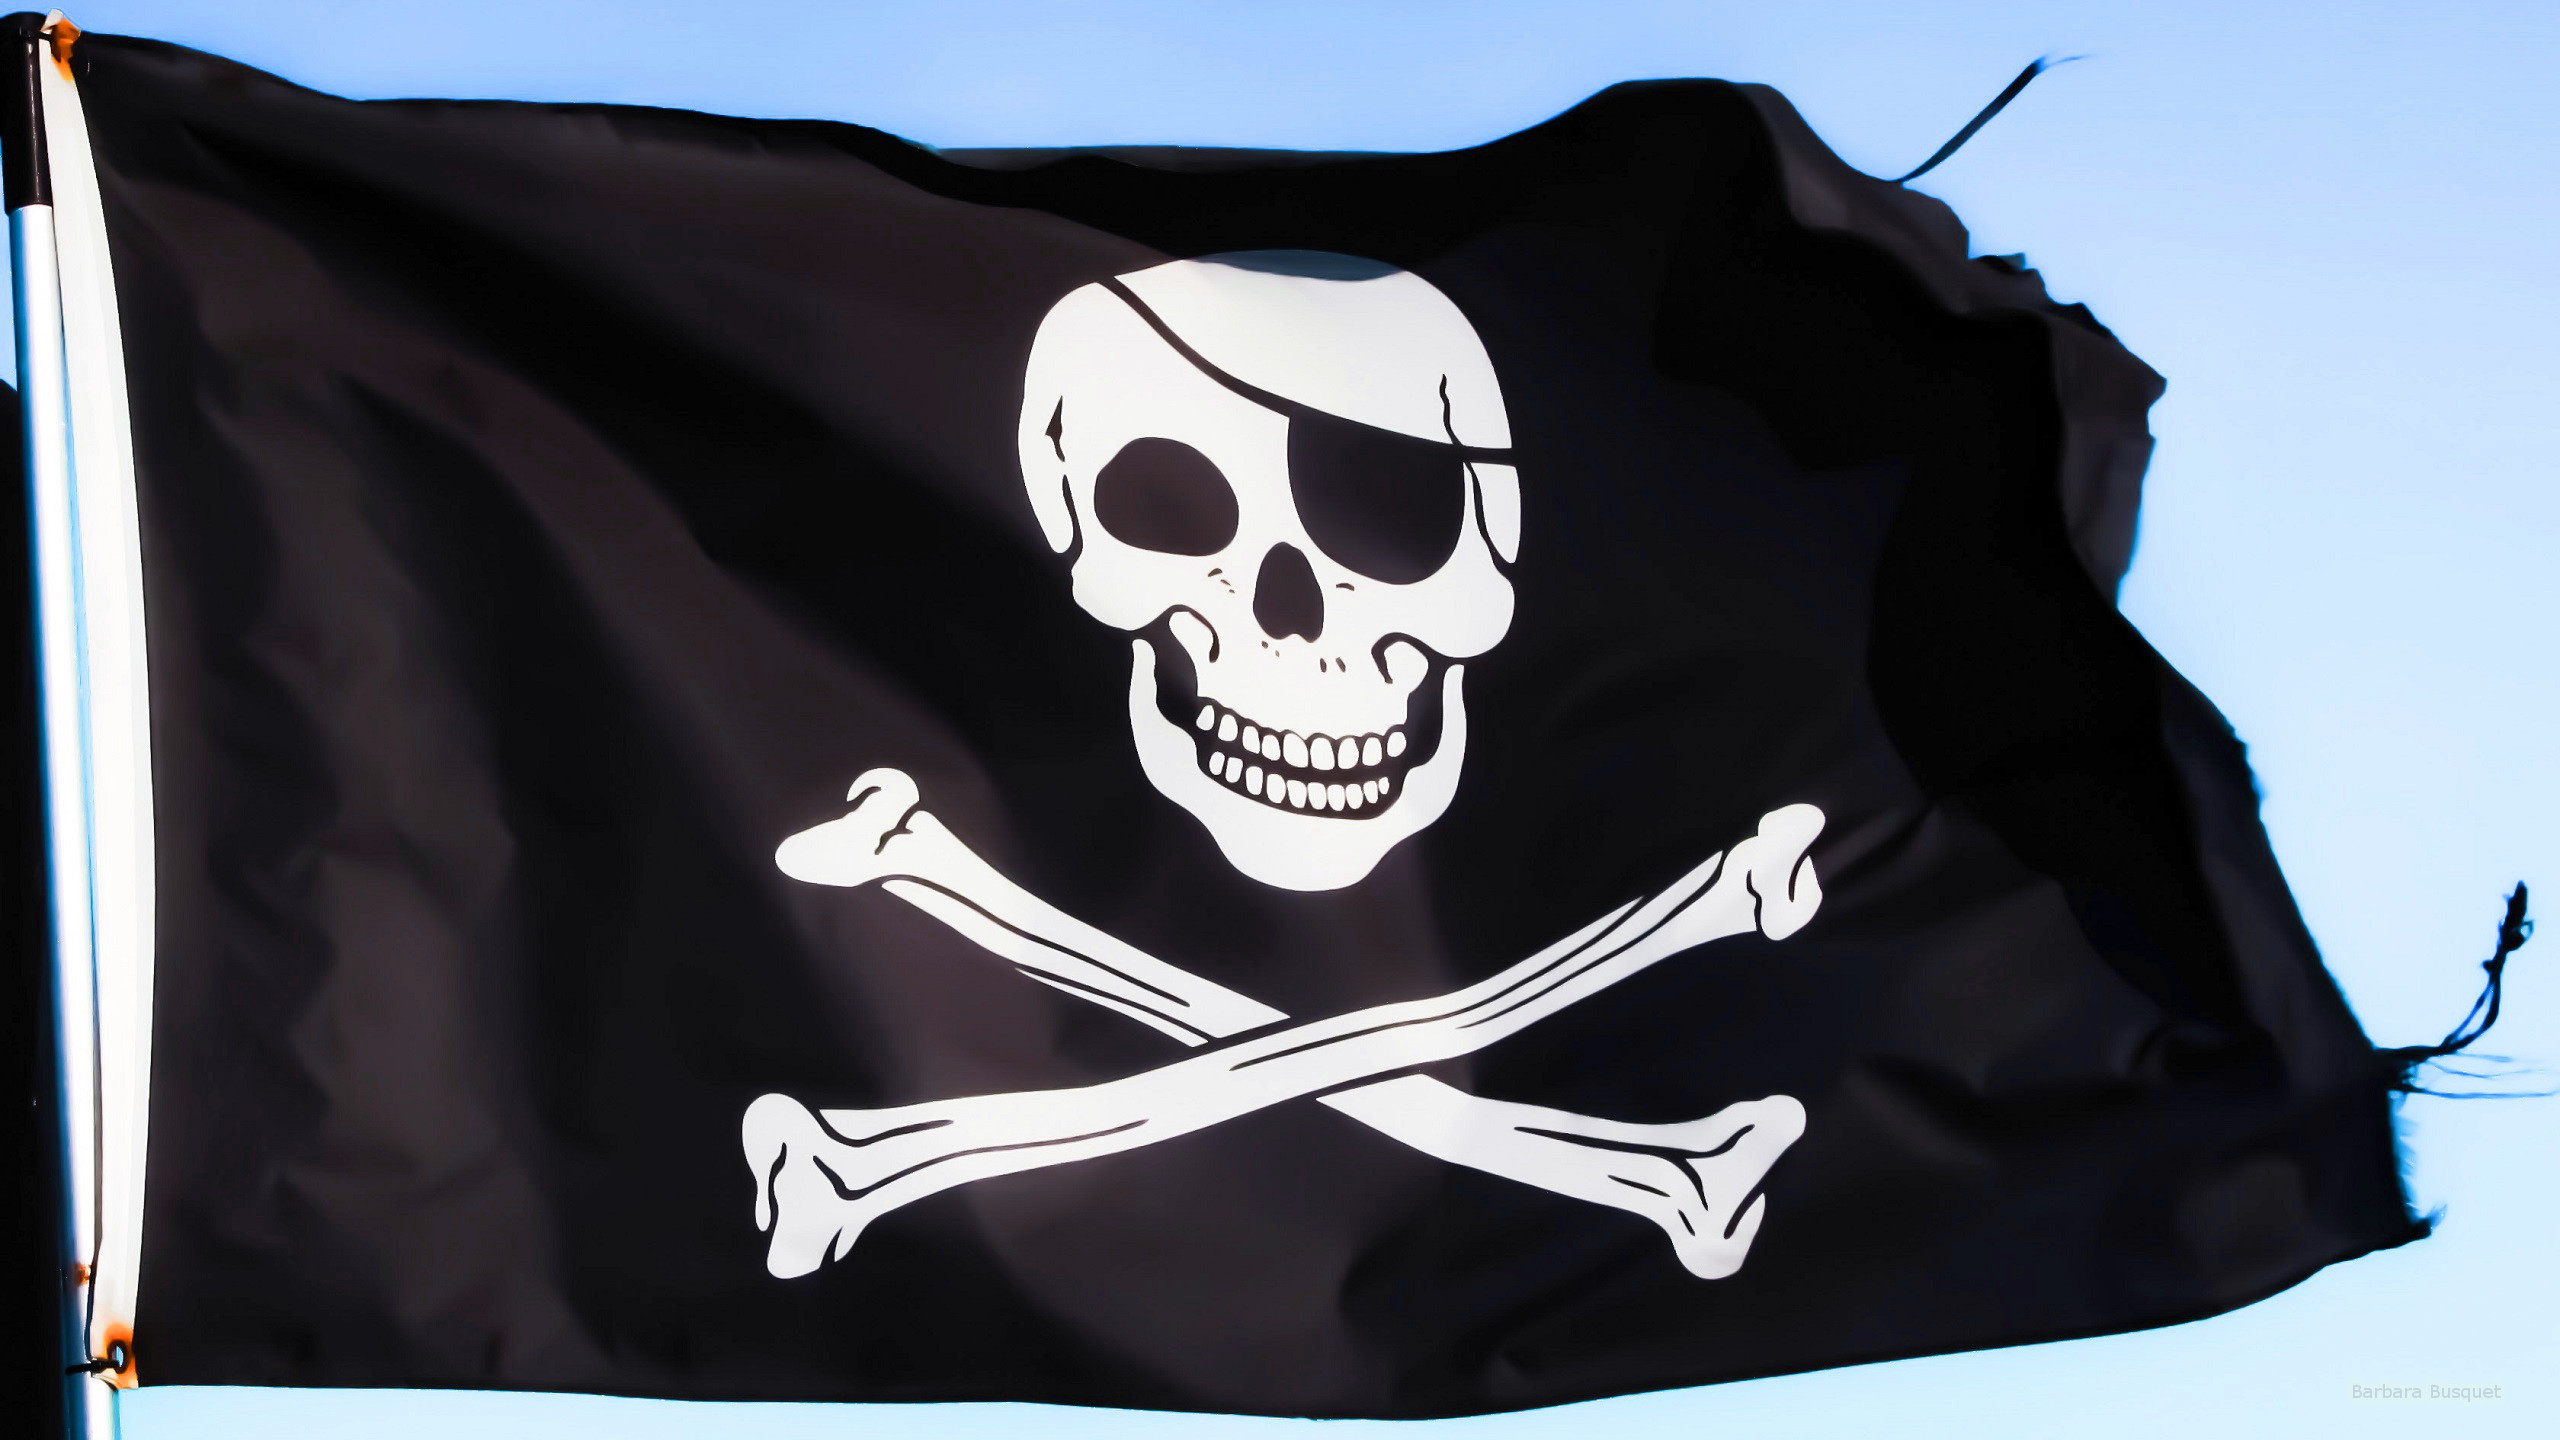 2560x1440 HD wallpaper with pirates flag.